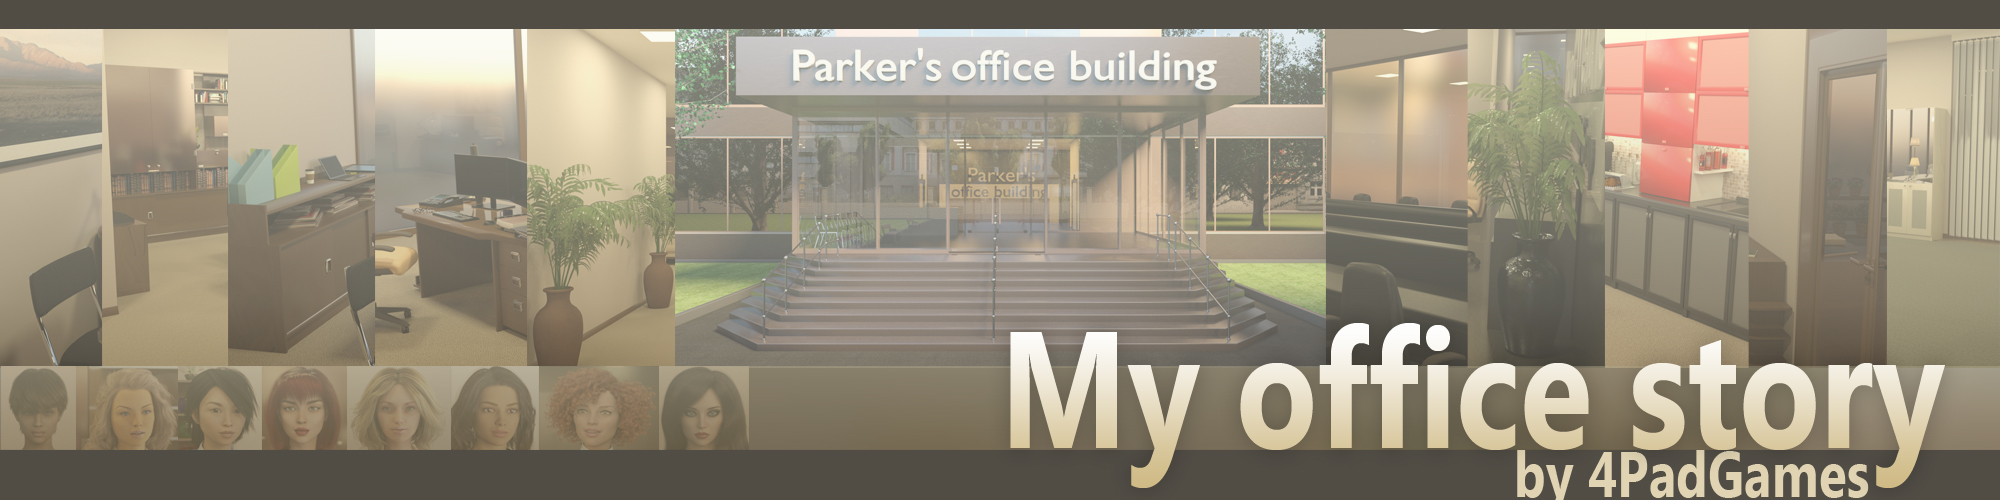 My Office Story poster